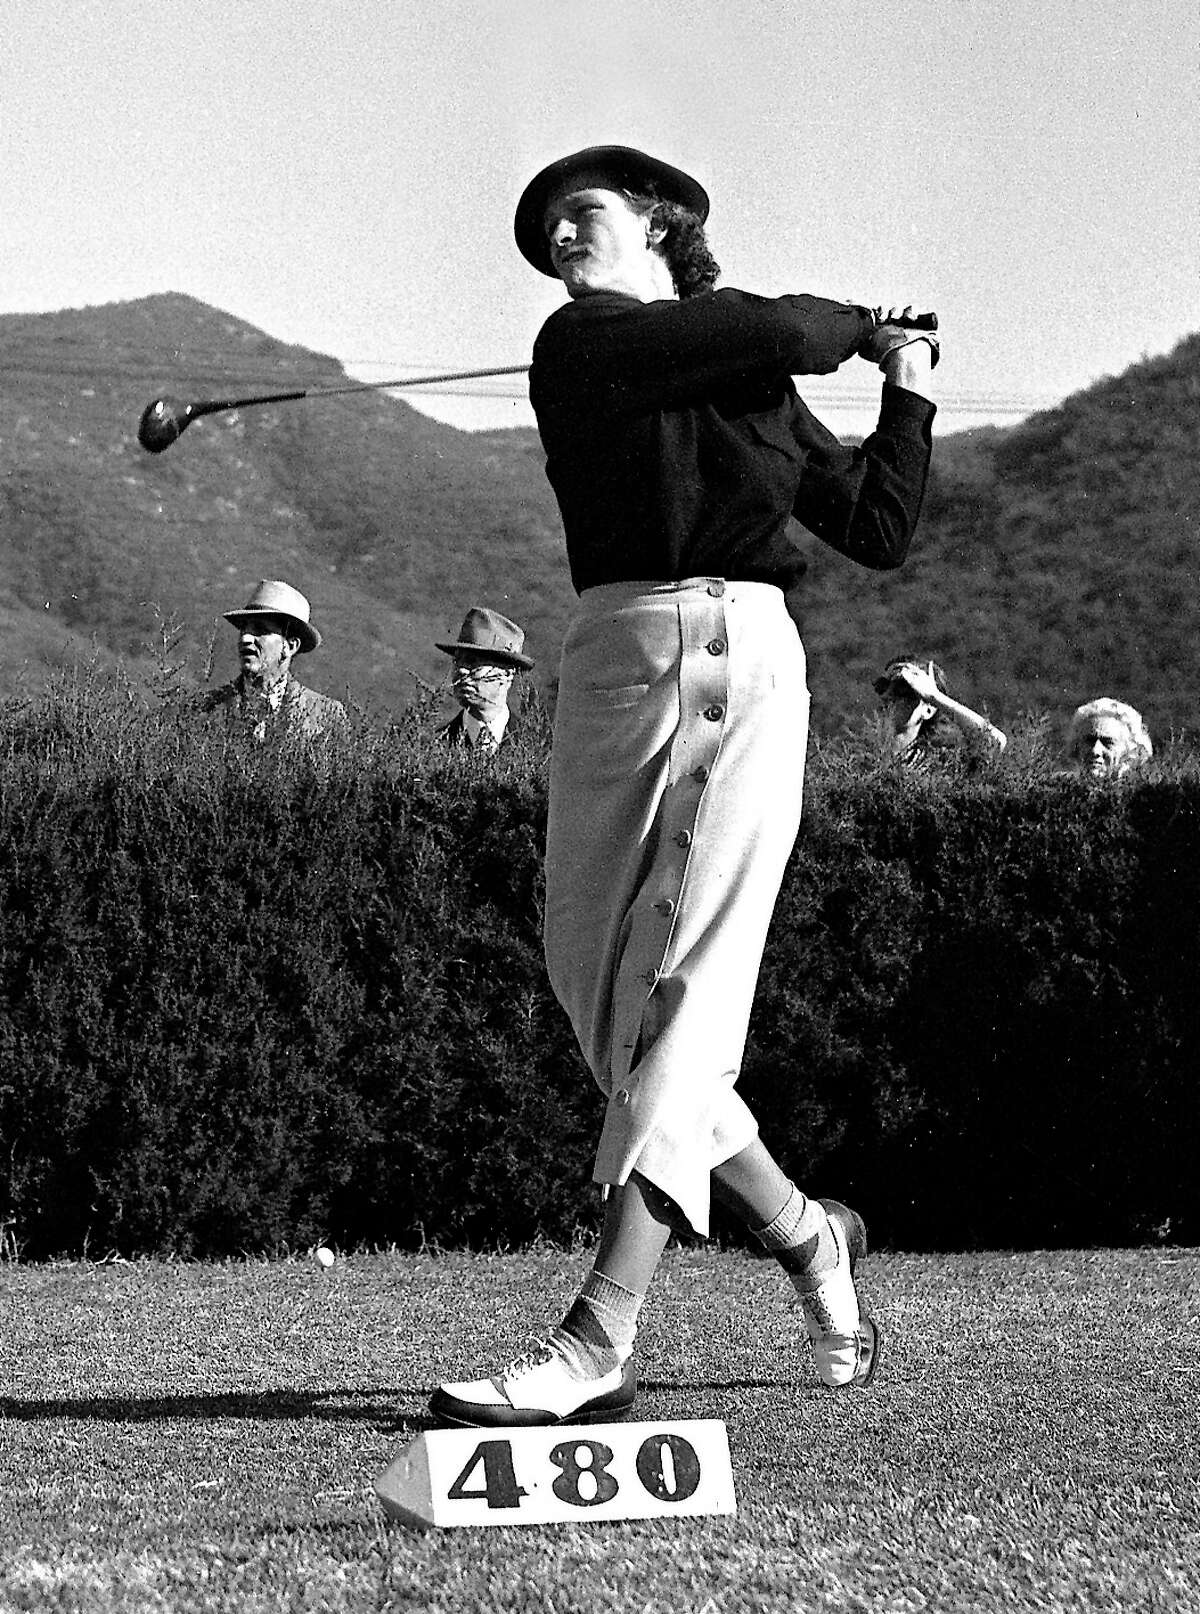 ** FILE ** Babe Didrikson Zaharias drives a ball during the $1500 Southern California Open golf tournament at Oakmont golf course in Glendale, Calif., in this Dec. 17, 1936 photo. A year ago, Michelle Wie was in line to make history at the John Deere Classic. She'll try again to become the first woman since Babe Zaharias in 1945 to make the cut at a PGA tournament starting Thursday July 13, 2006. (AP Photo/File)